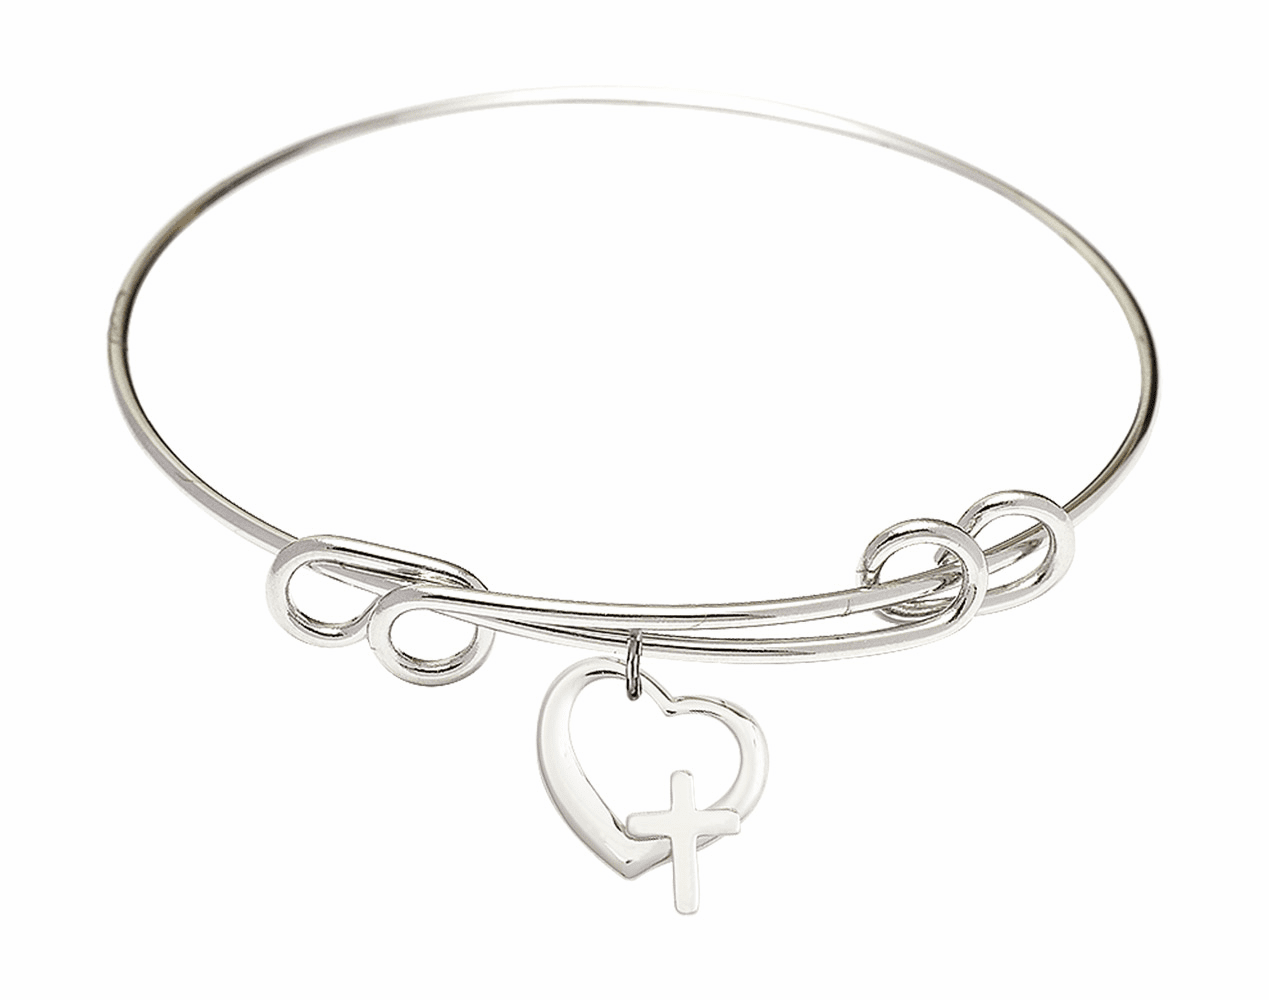 Round Double Loop Bangle Bracelet w/Heart with Cross Sterling Silver Charm by Bliss Mfg